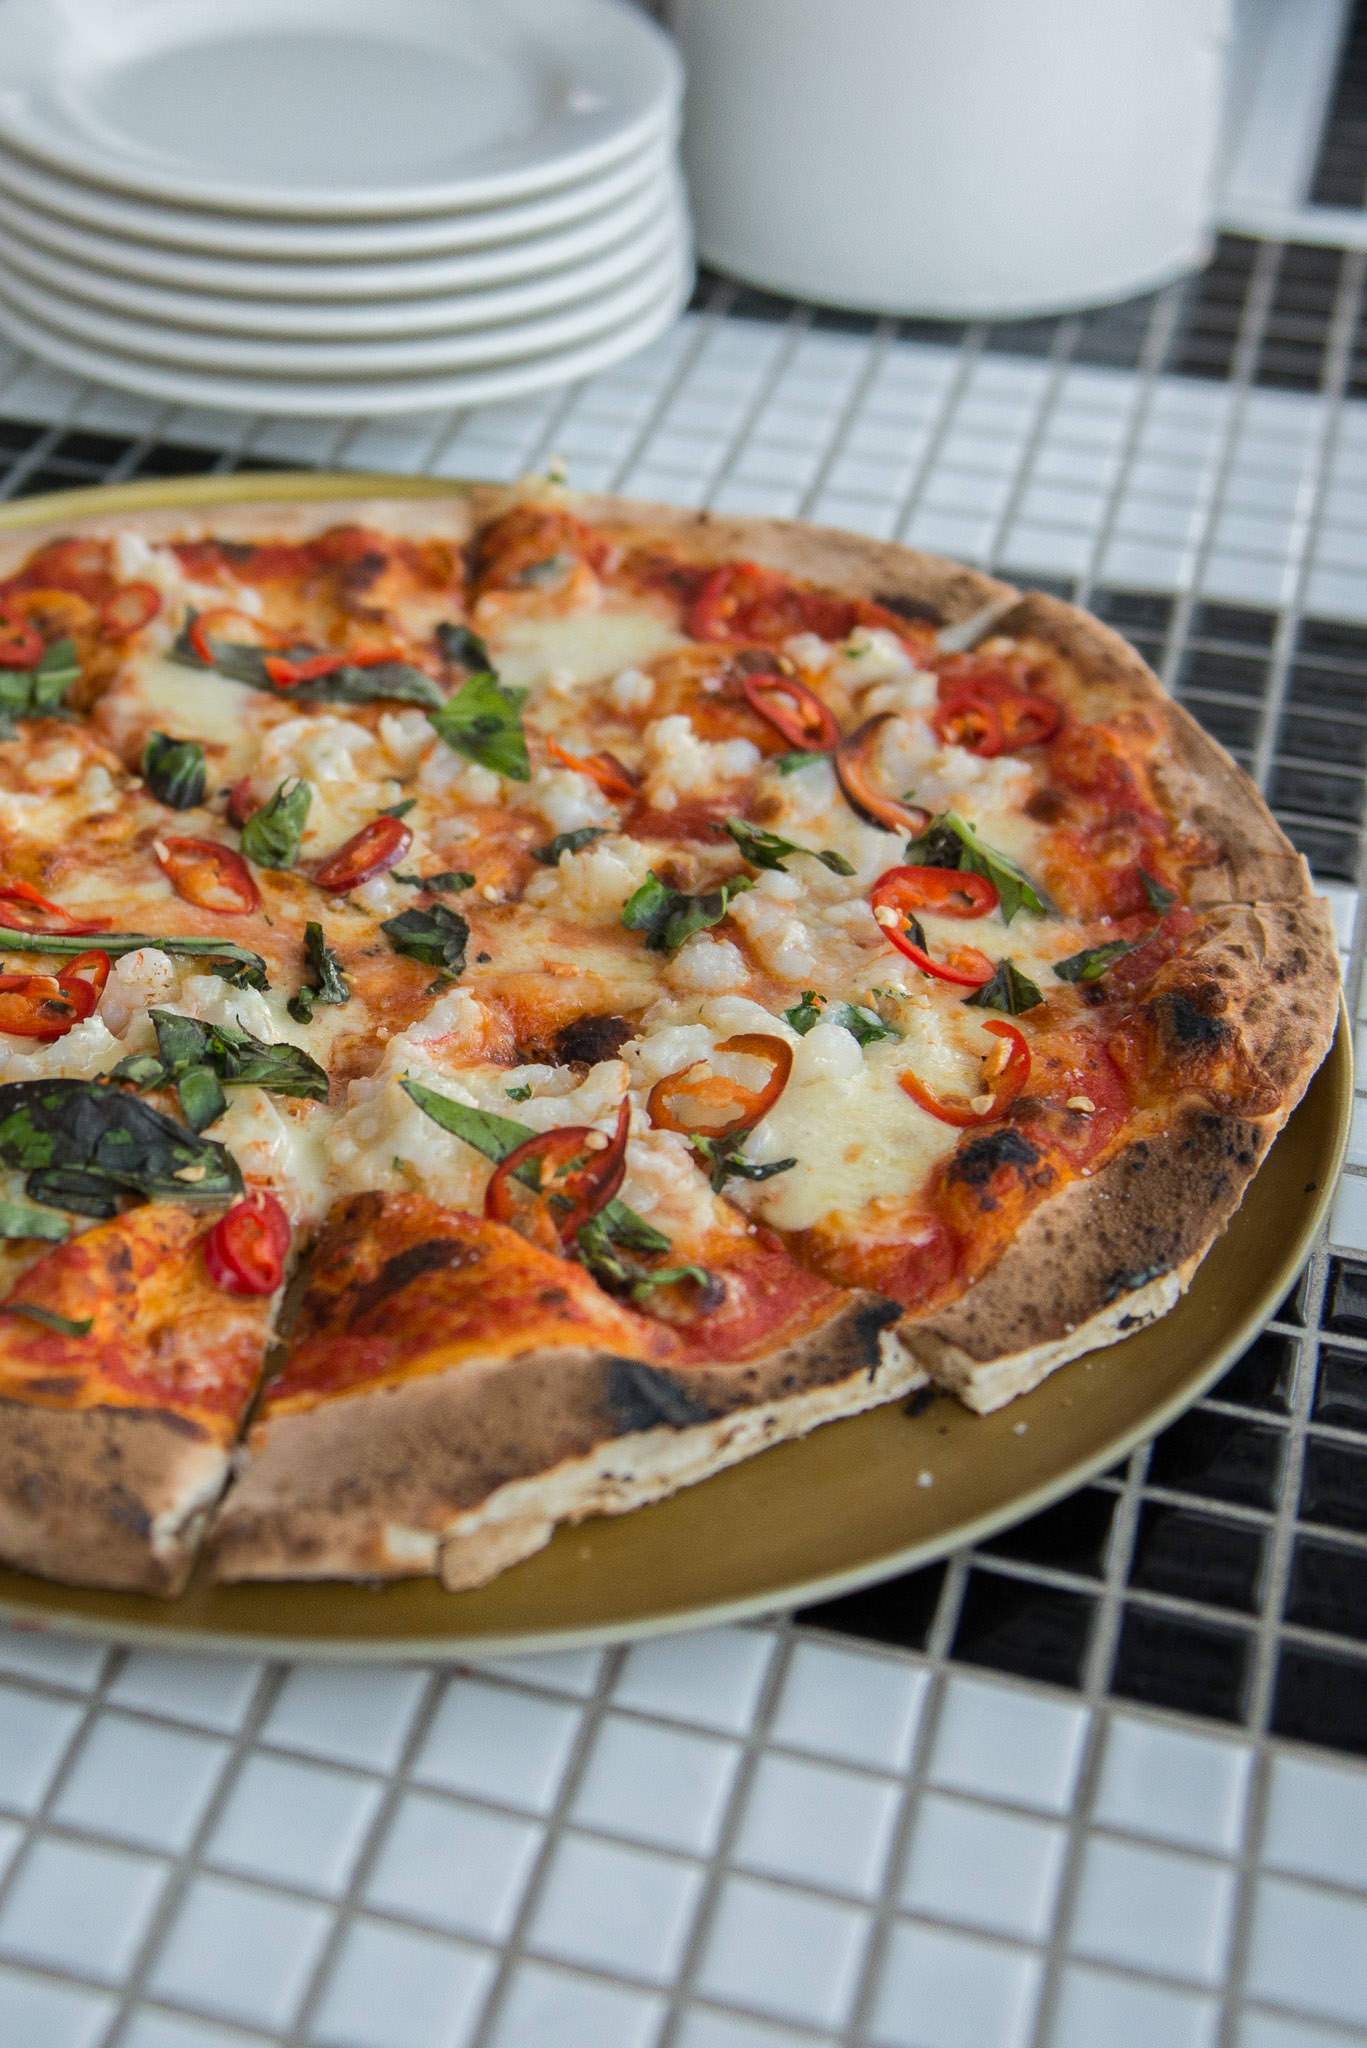 Pizza - Carnarvon prawns, chilli, Borello bocconcini and basil